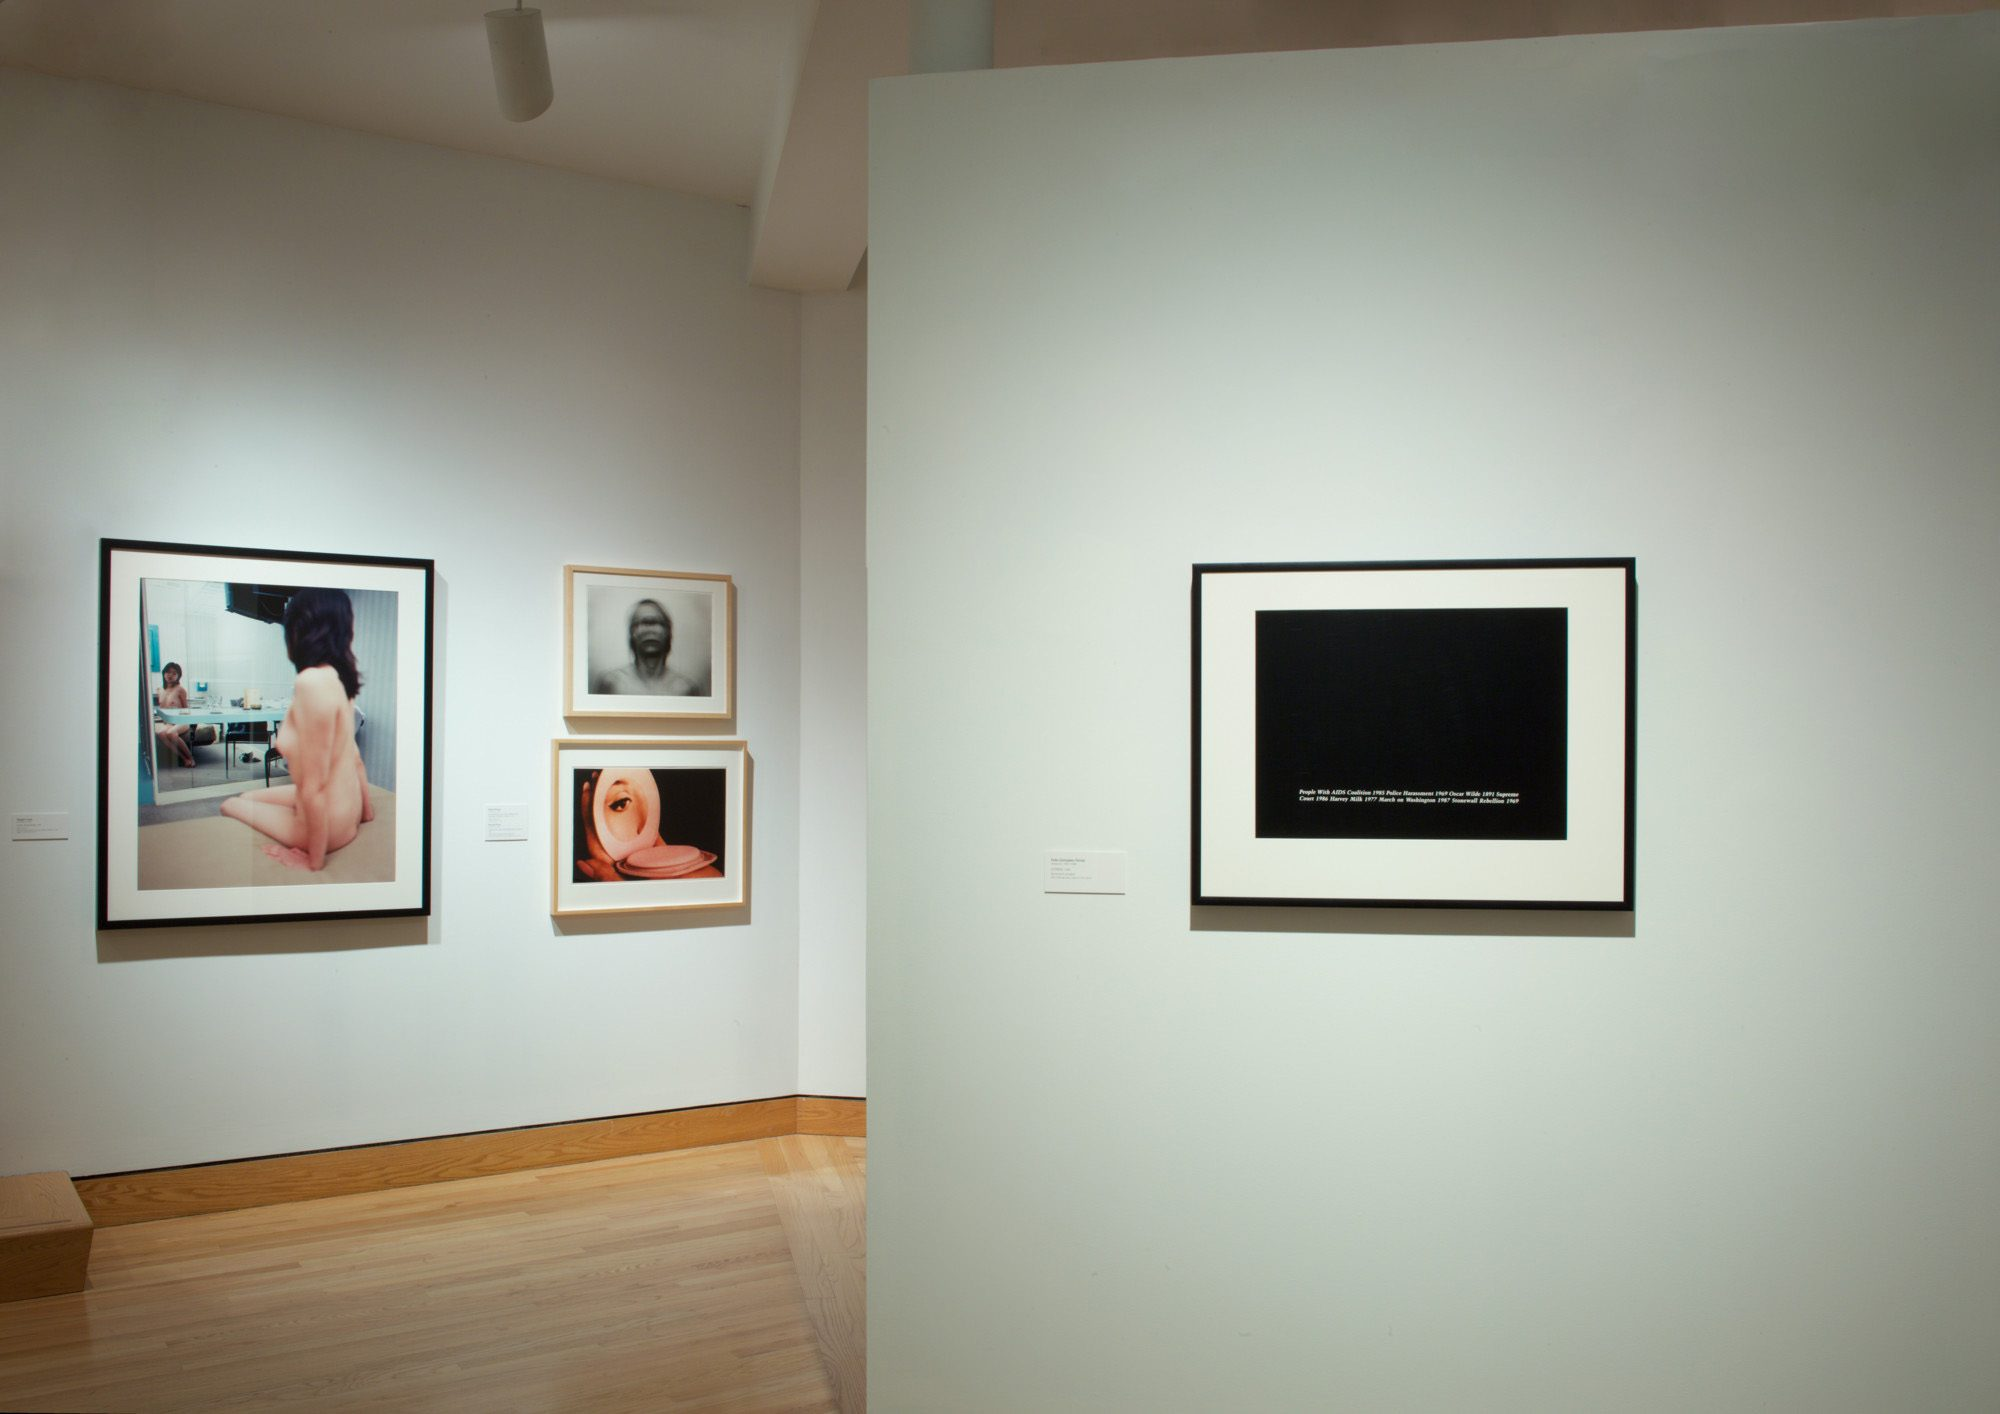 Installation photography by Arthur Evans.